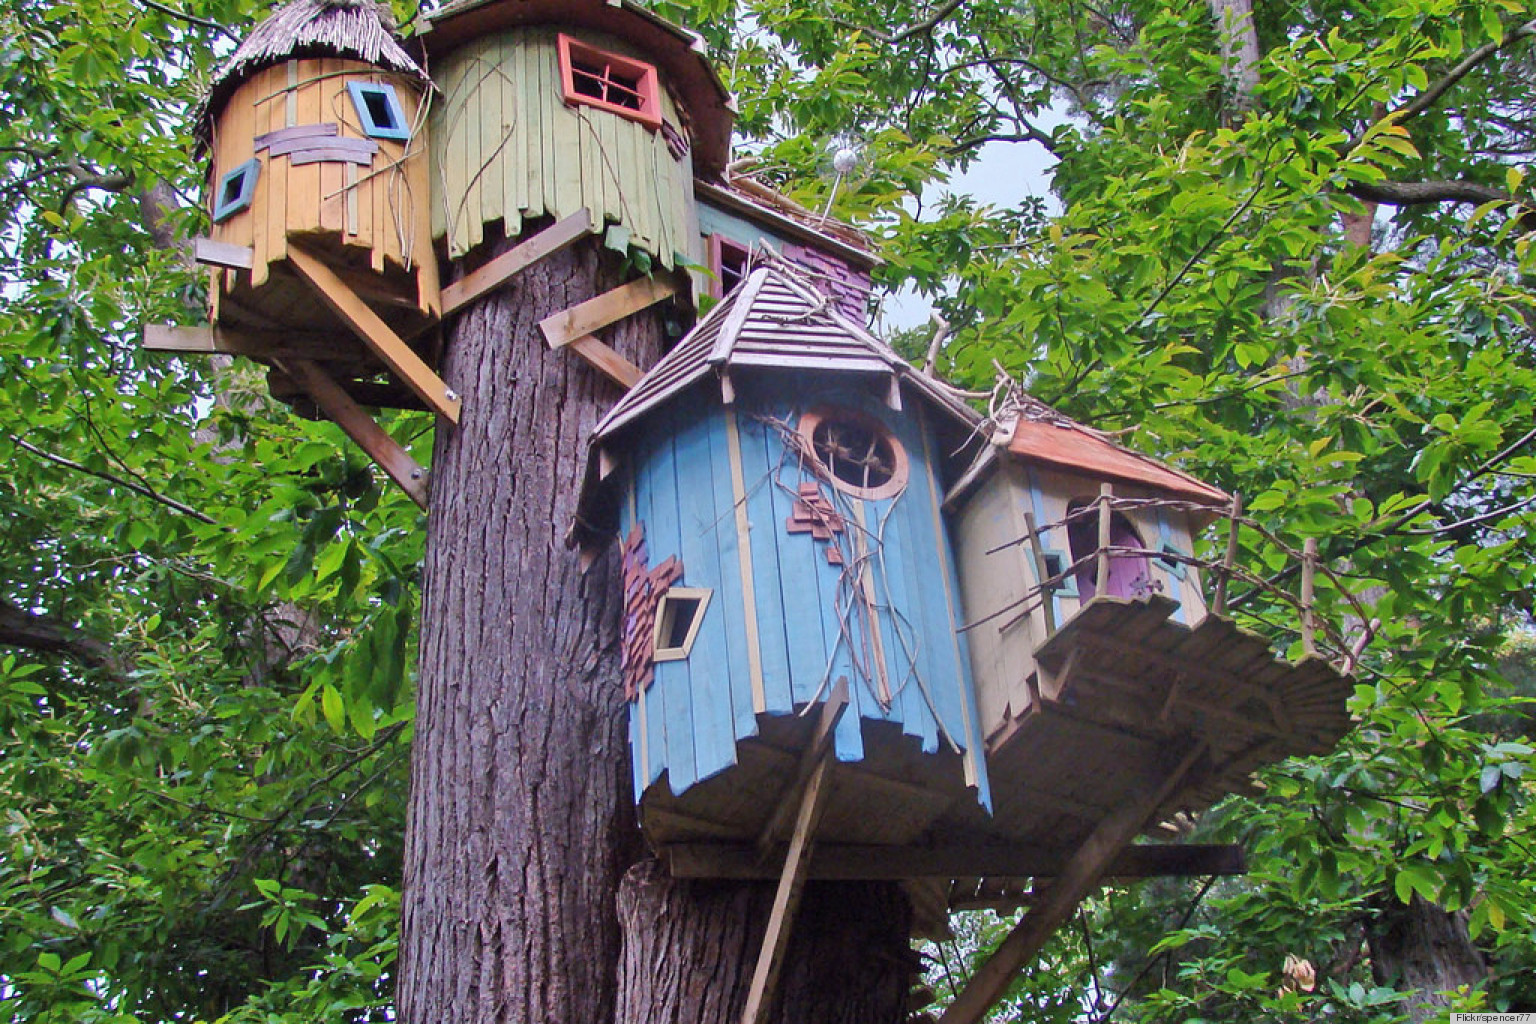 Cool Treehouse Designs We Wish We Had In Our Backyard (PHOTOS) | HuffPost Part 48